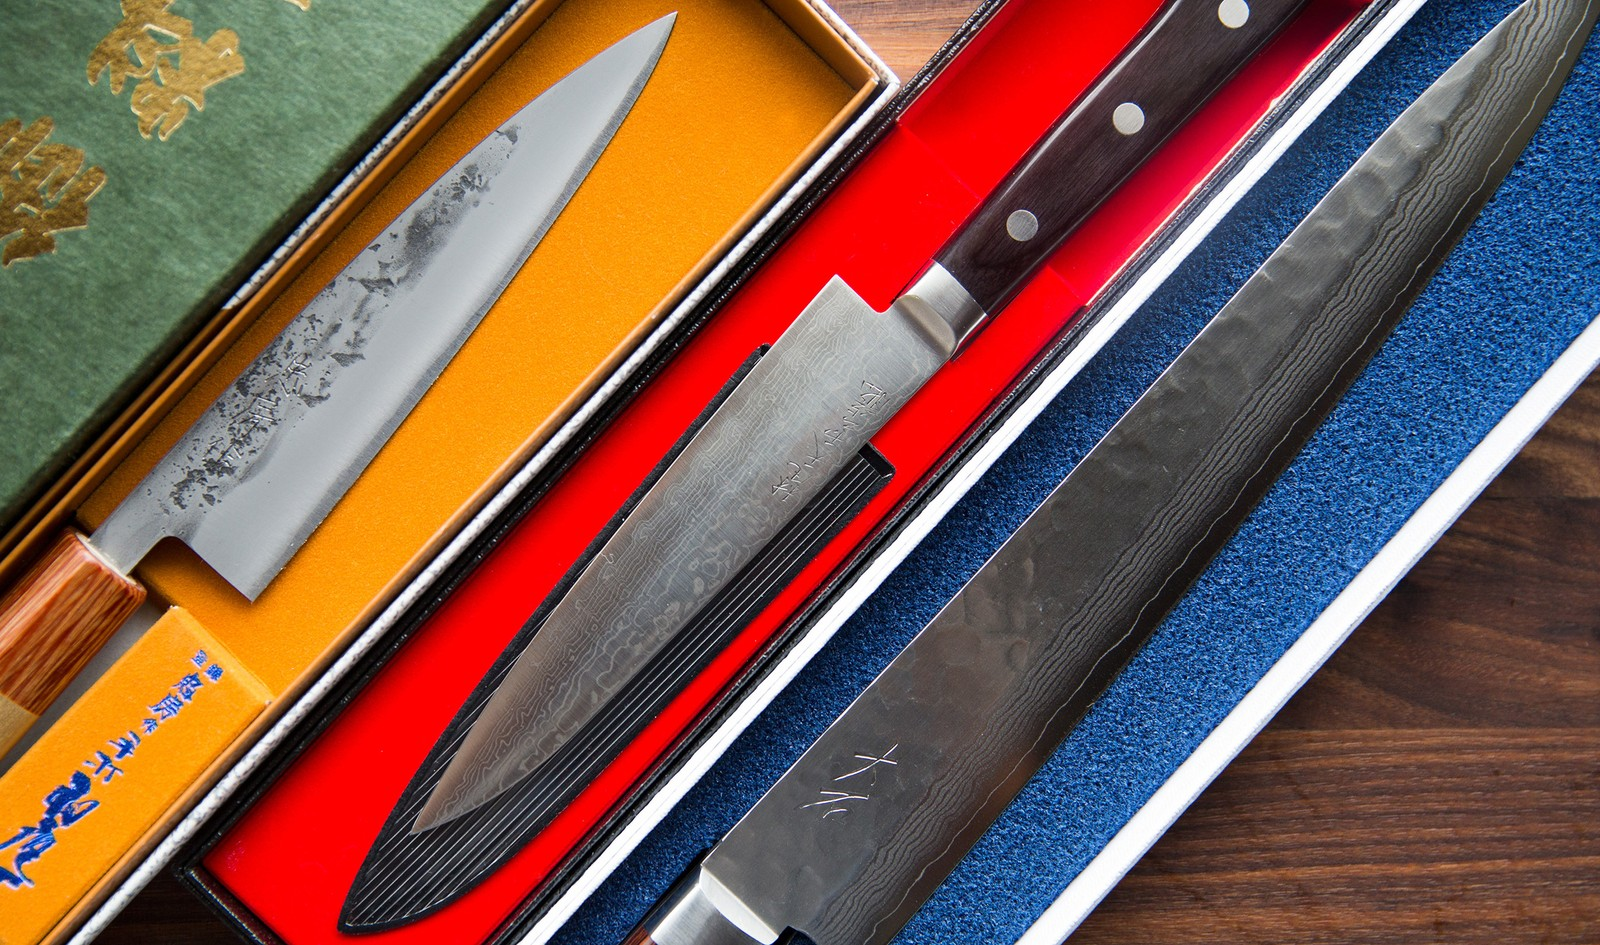 The ChefSteps Knife Collection